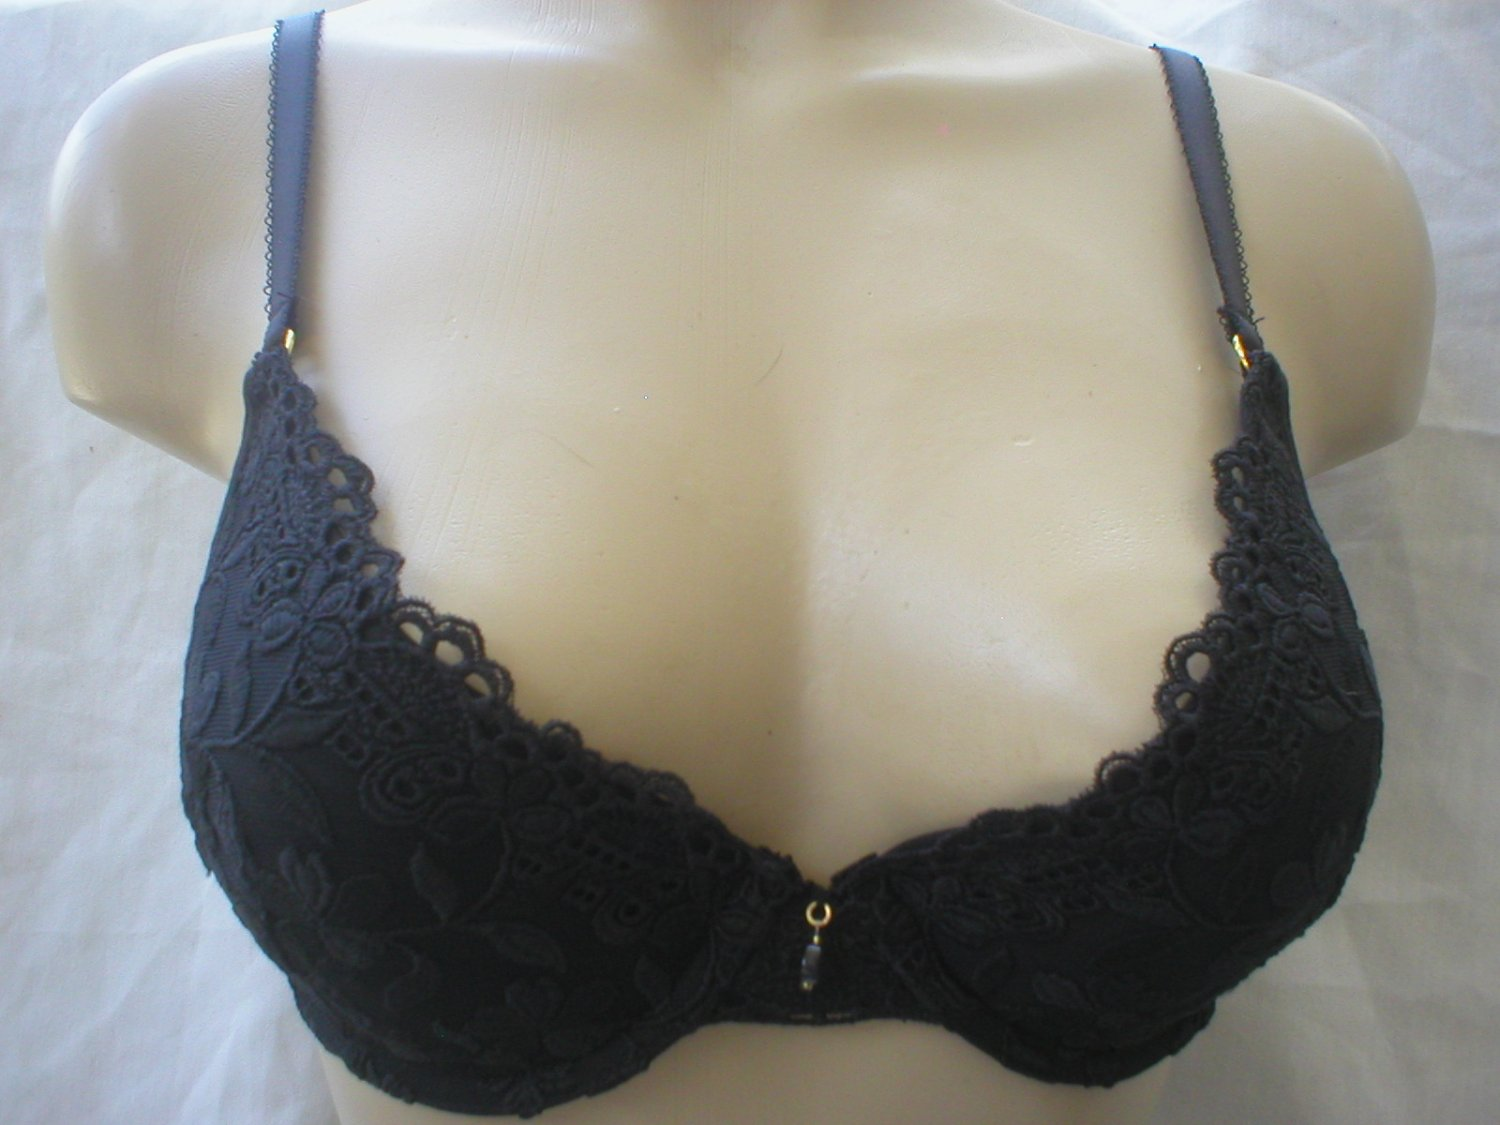 Badgley Mischka Black Lace Padded Contour Bra 10305 36C NWT